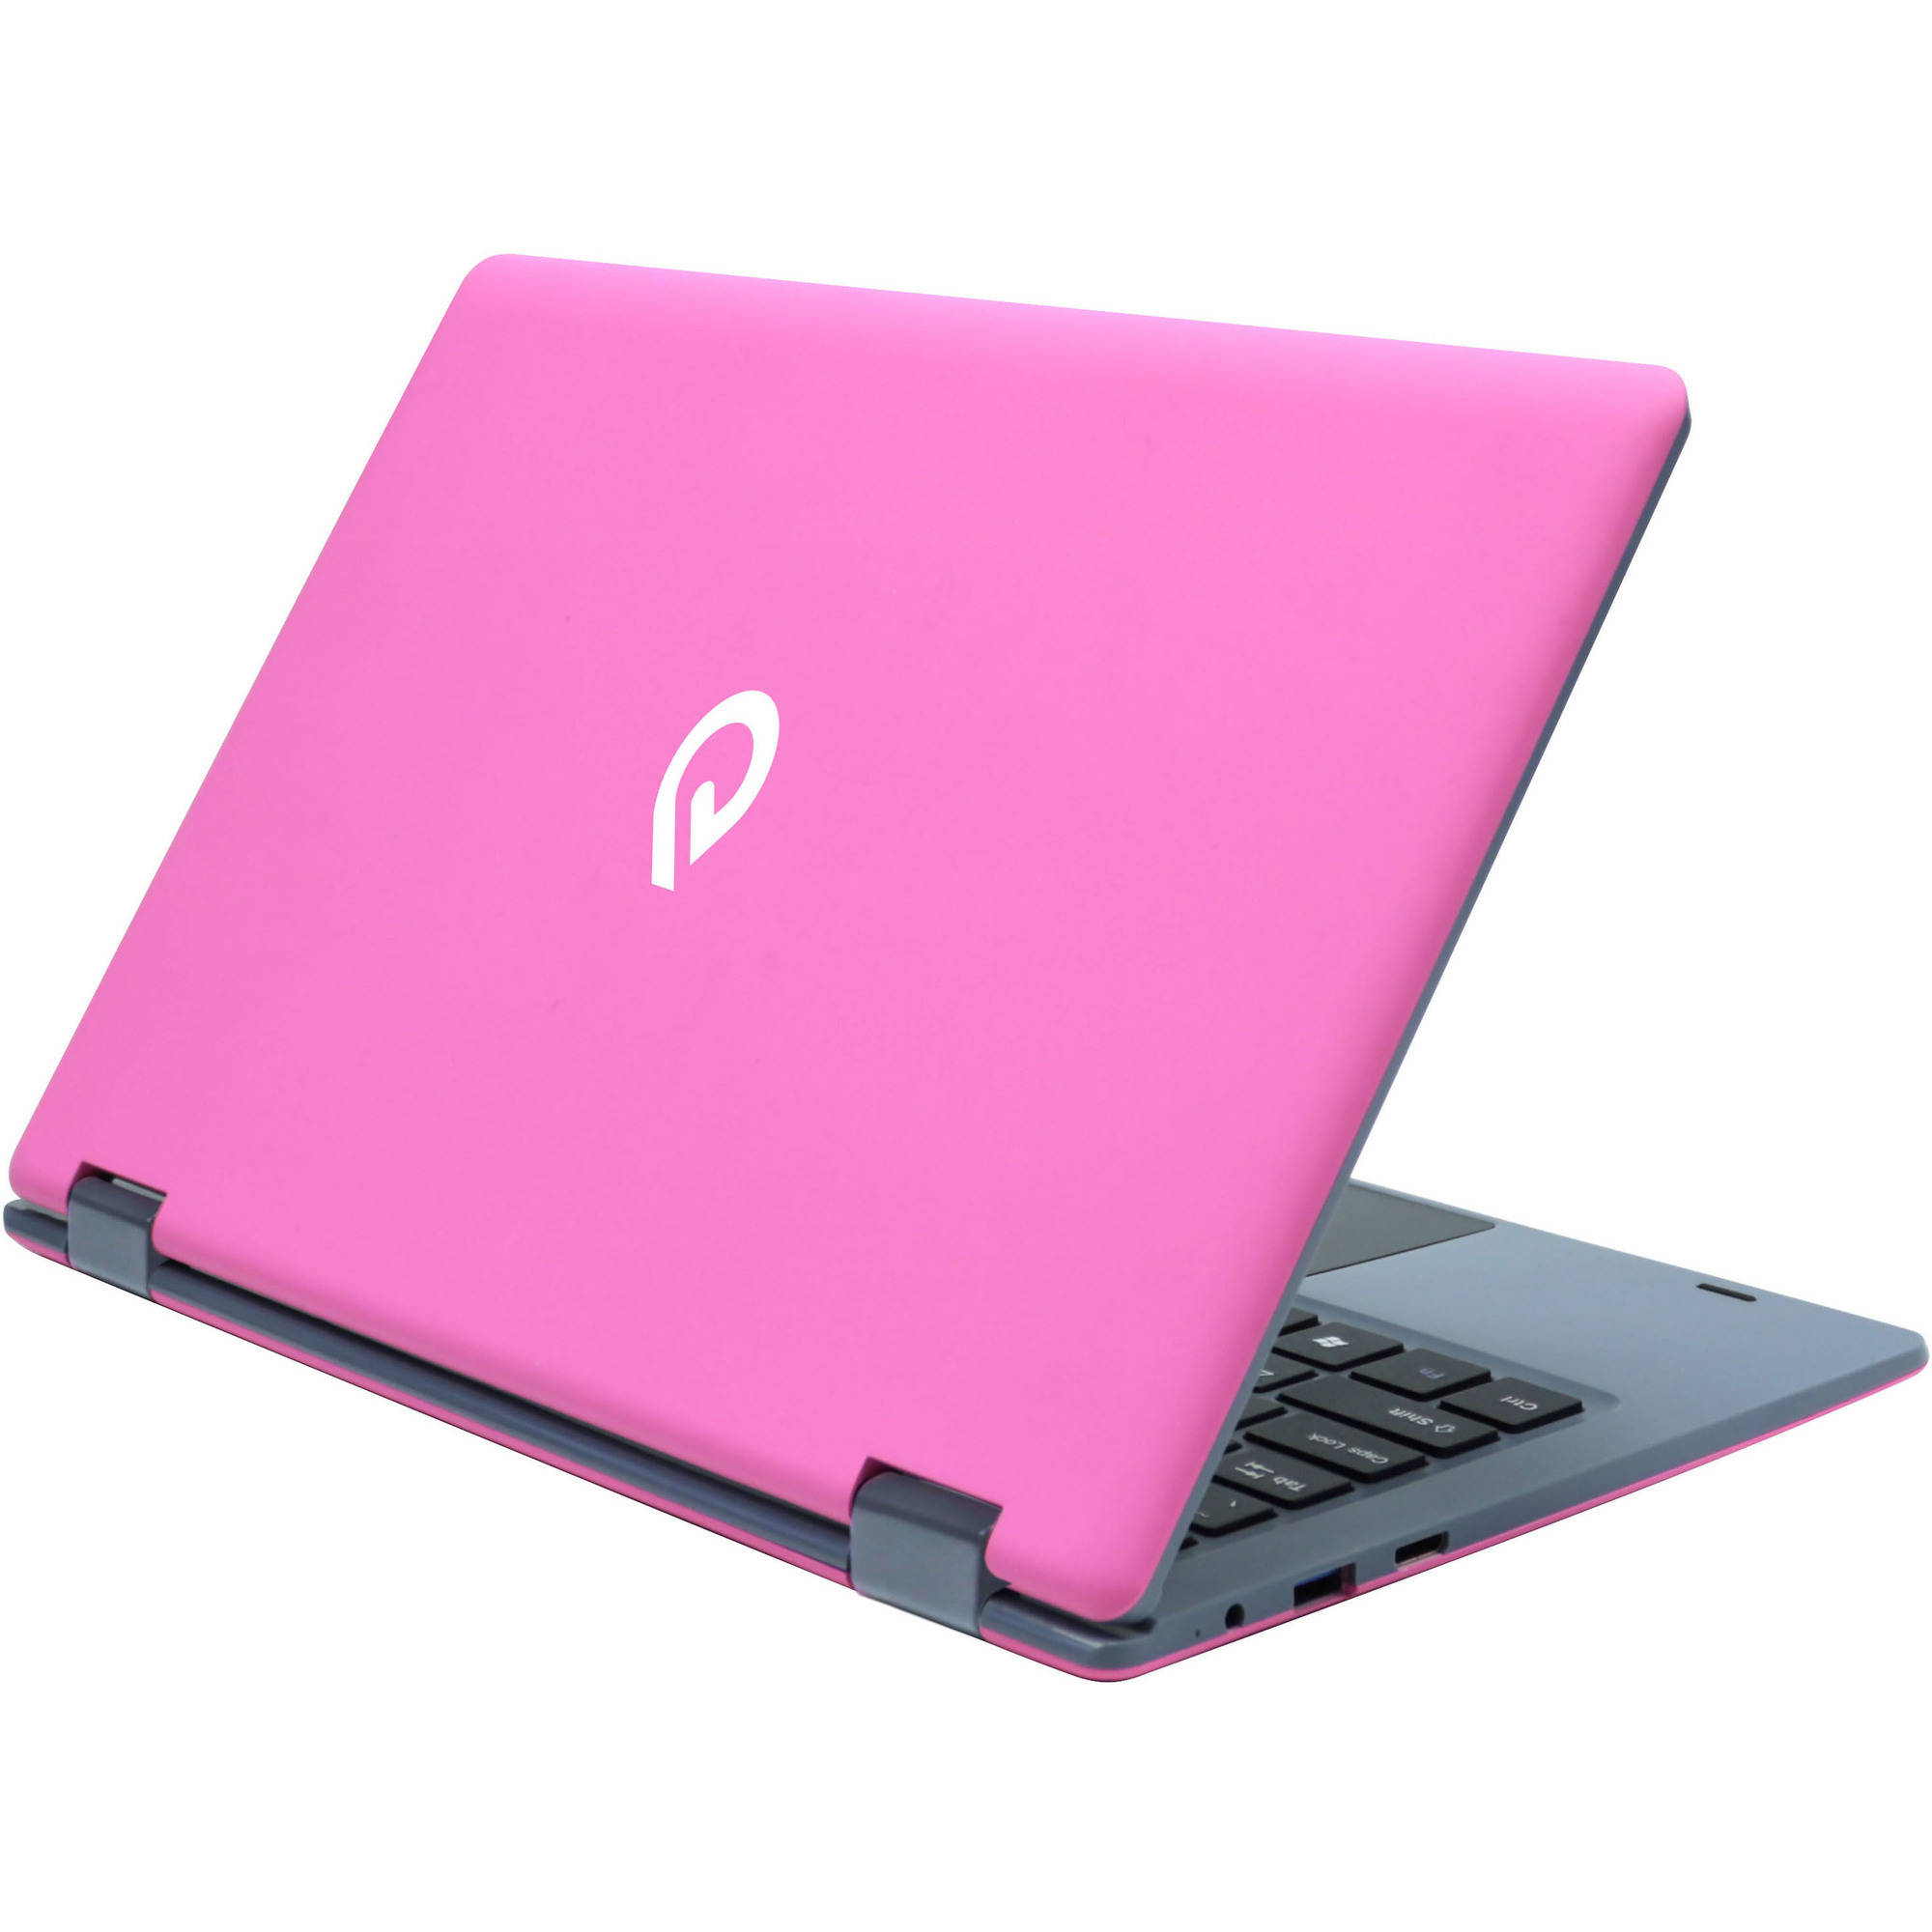 To See A List Of Our PC Accessories Click